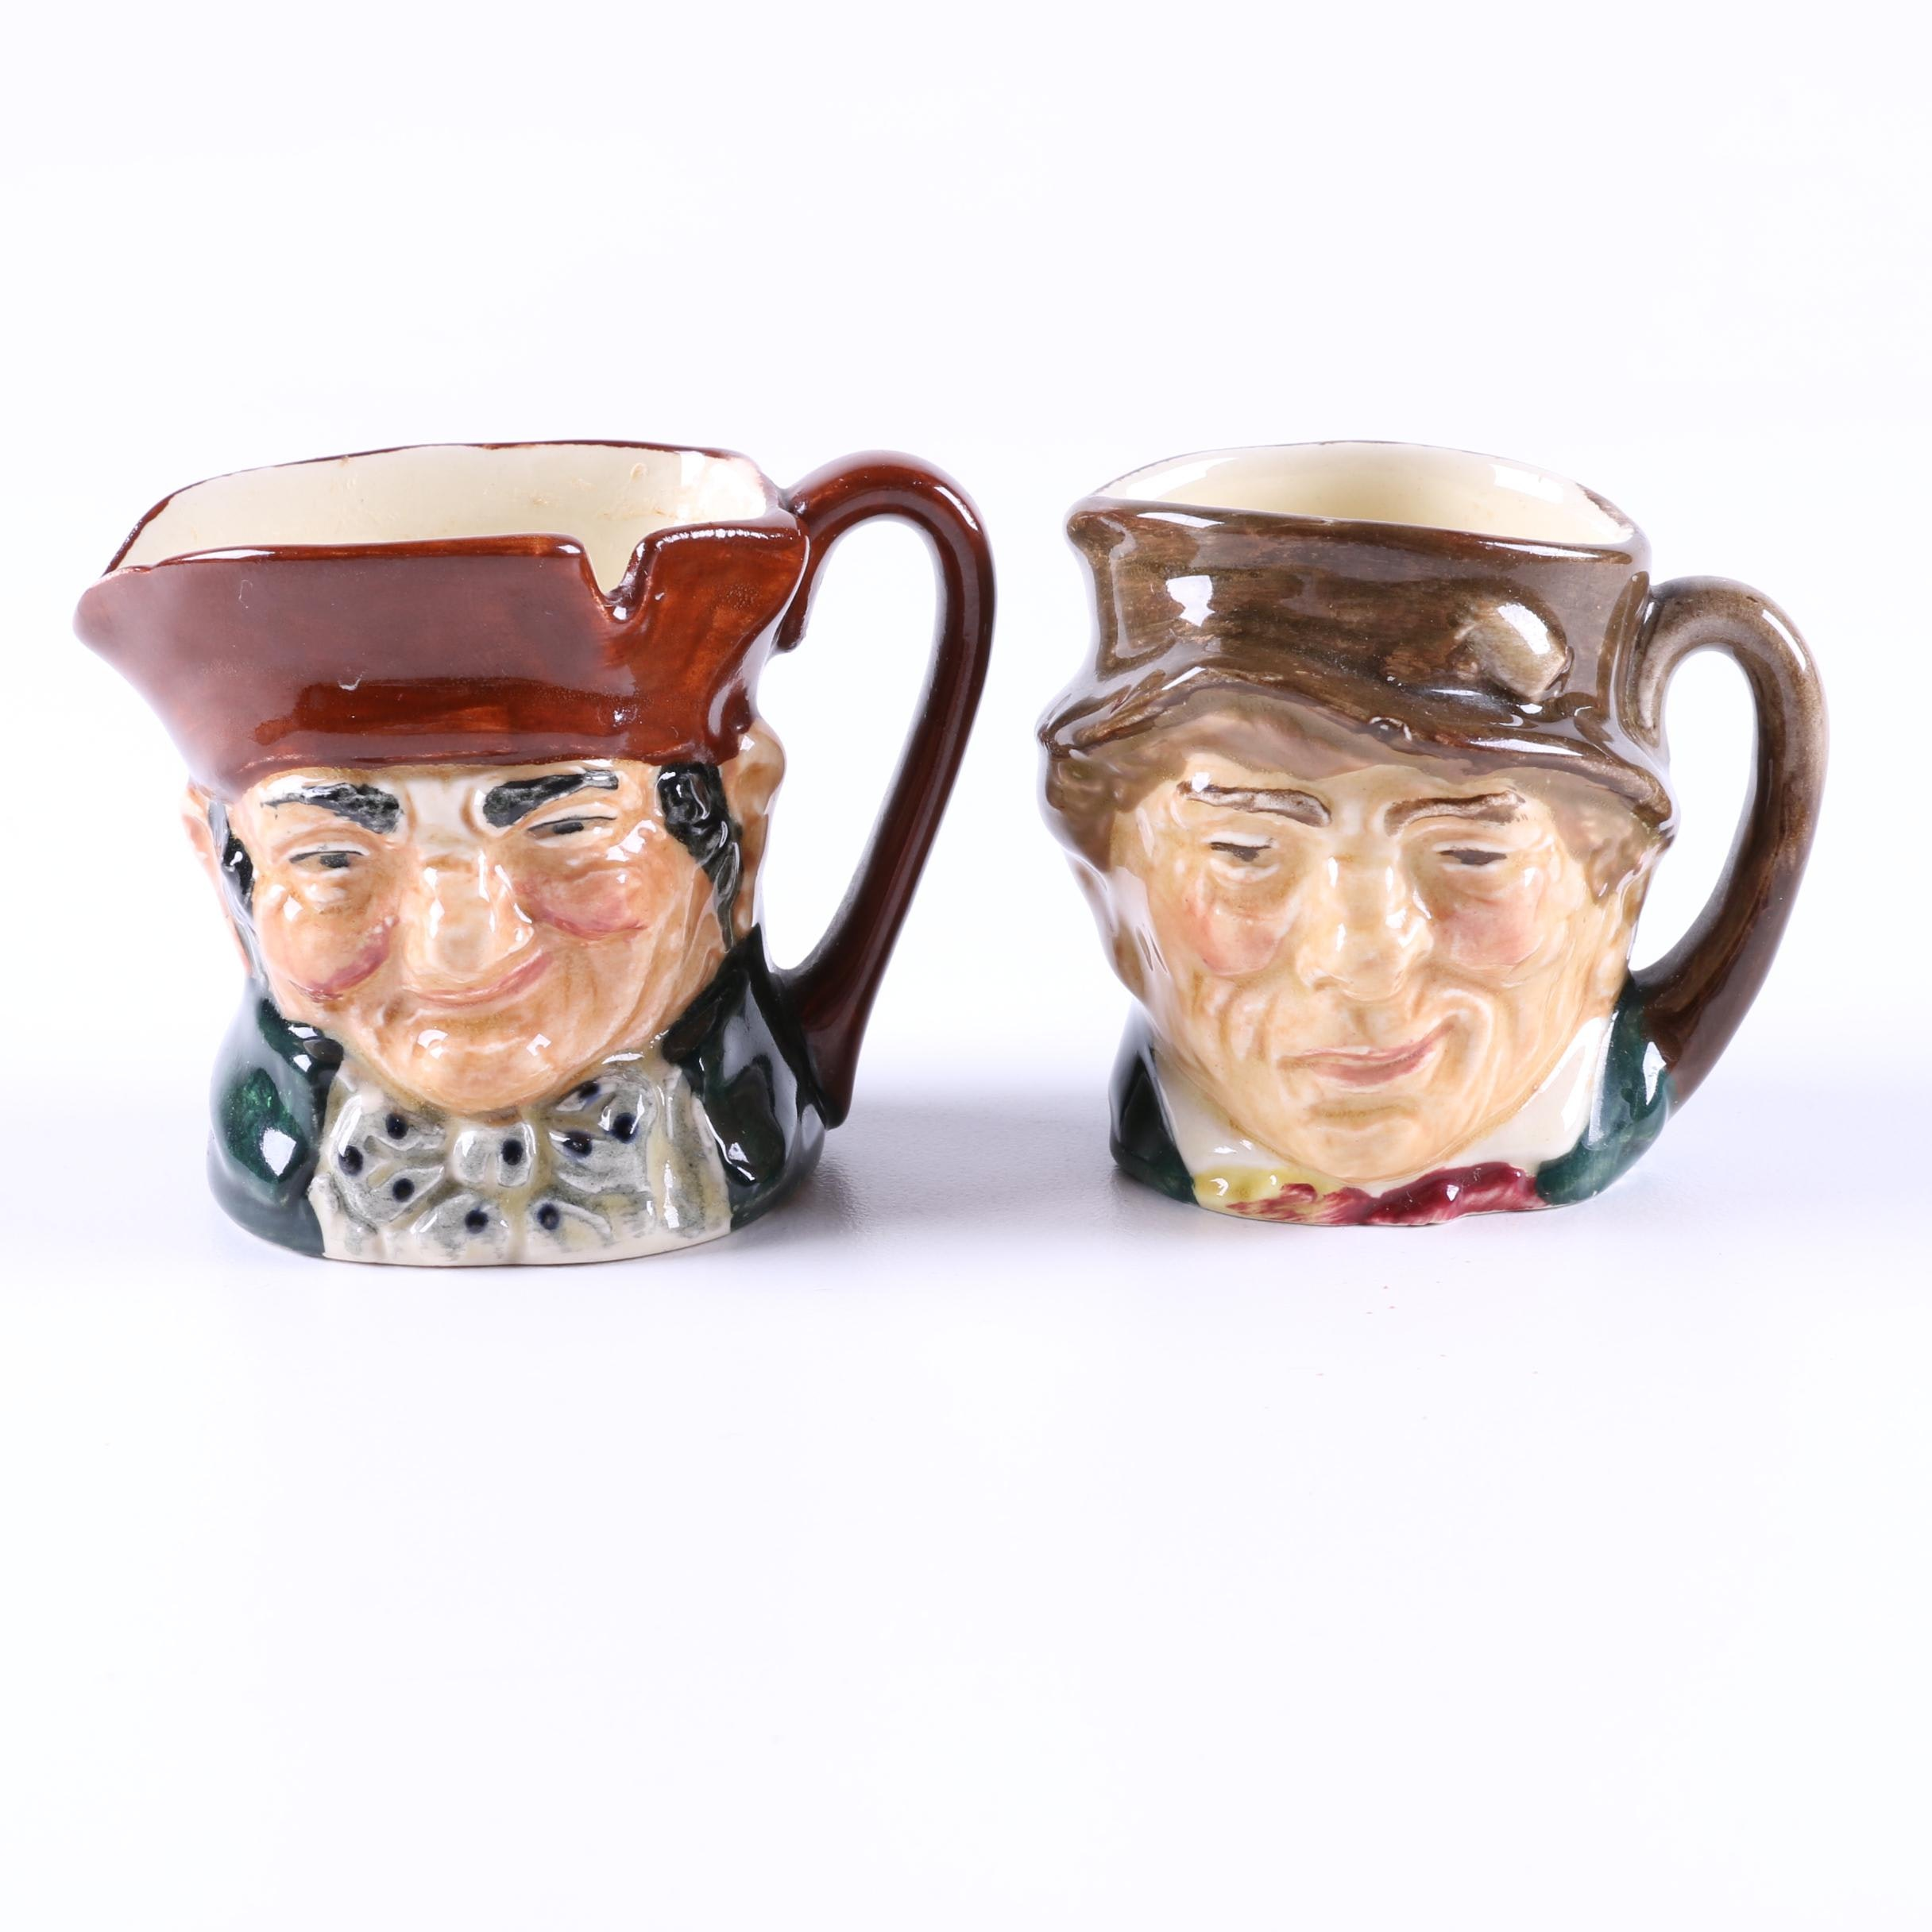 Royal Doulton Ceramic Character Mugs